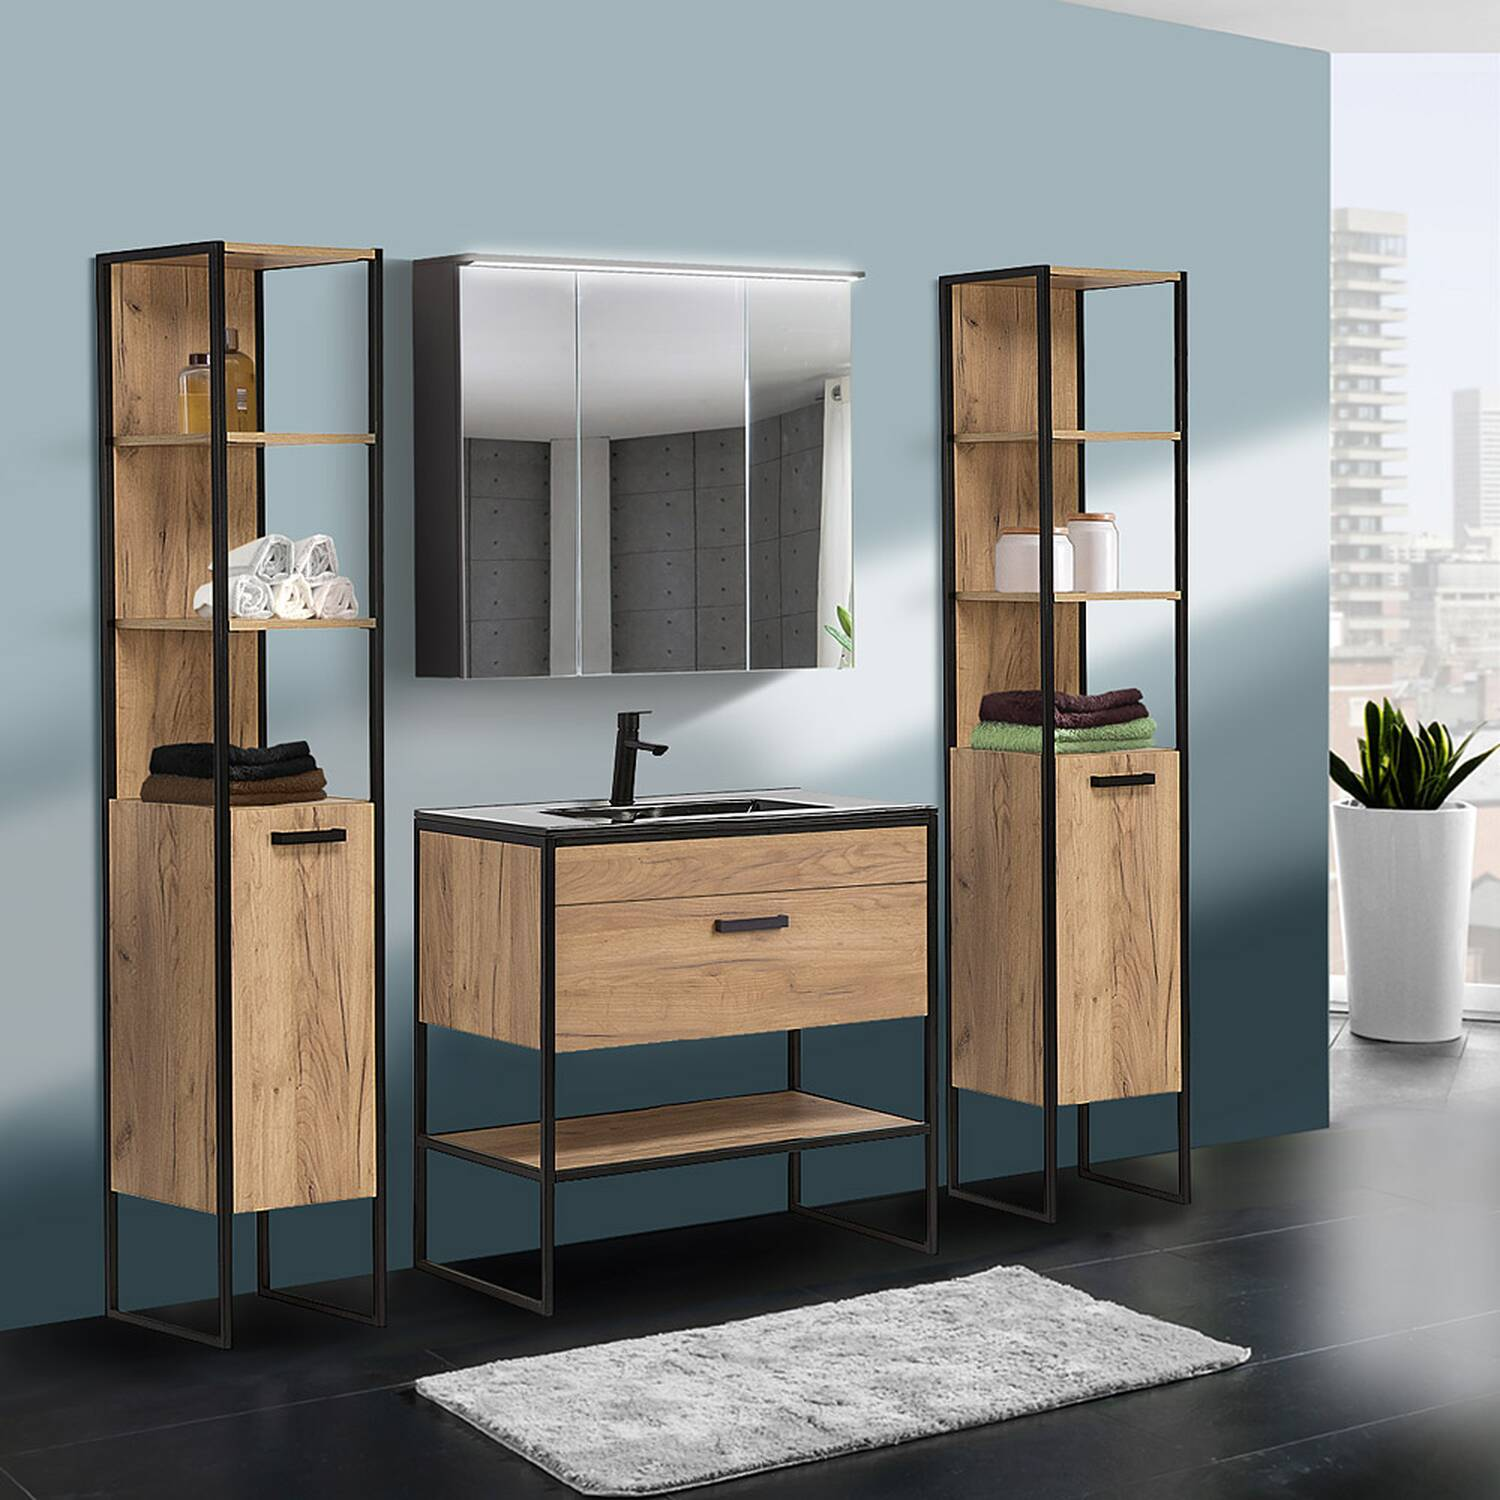 Badezimmer Set in Industrie-Design MANHATTAN-56 4-teilig Gold Craft Oak-Eiche B/H/T 135/185/46cm